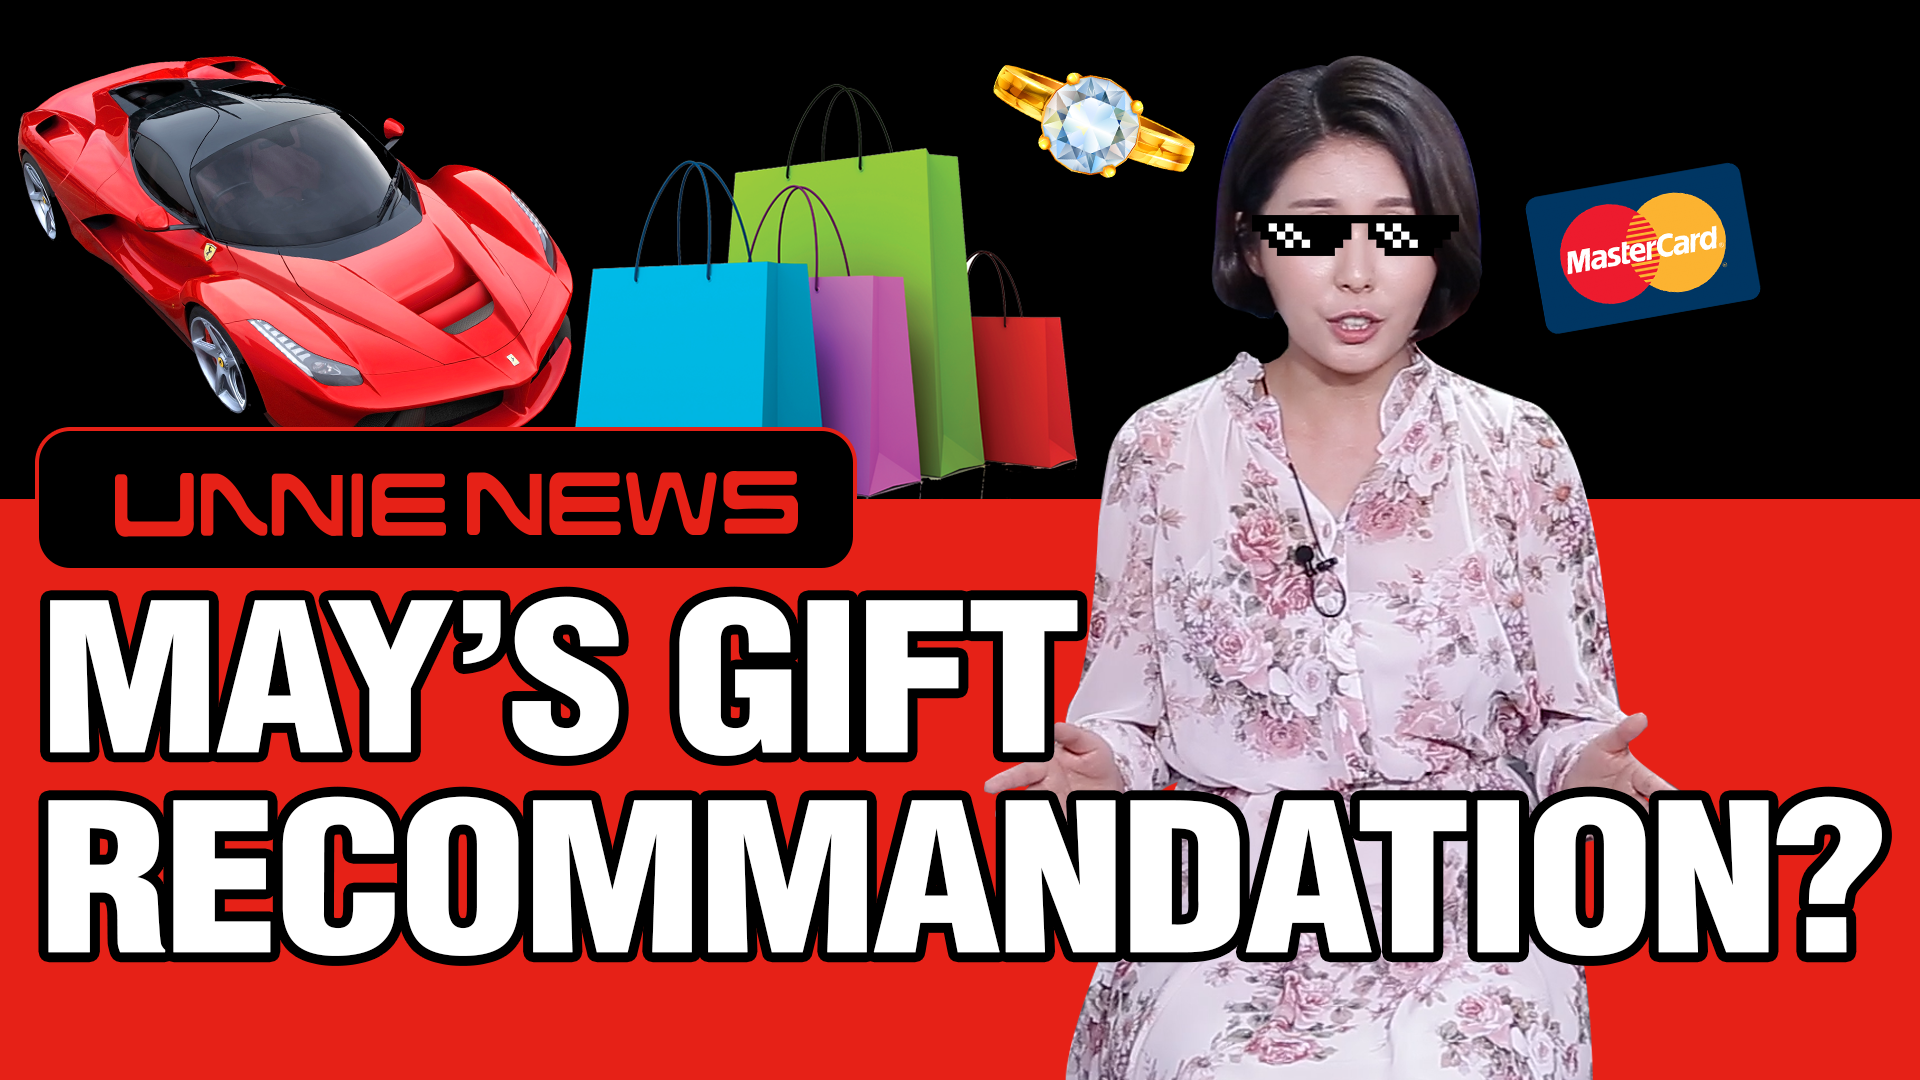 [UNNIE NEWS] May's Gift Recommandation?🎁